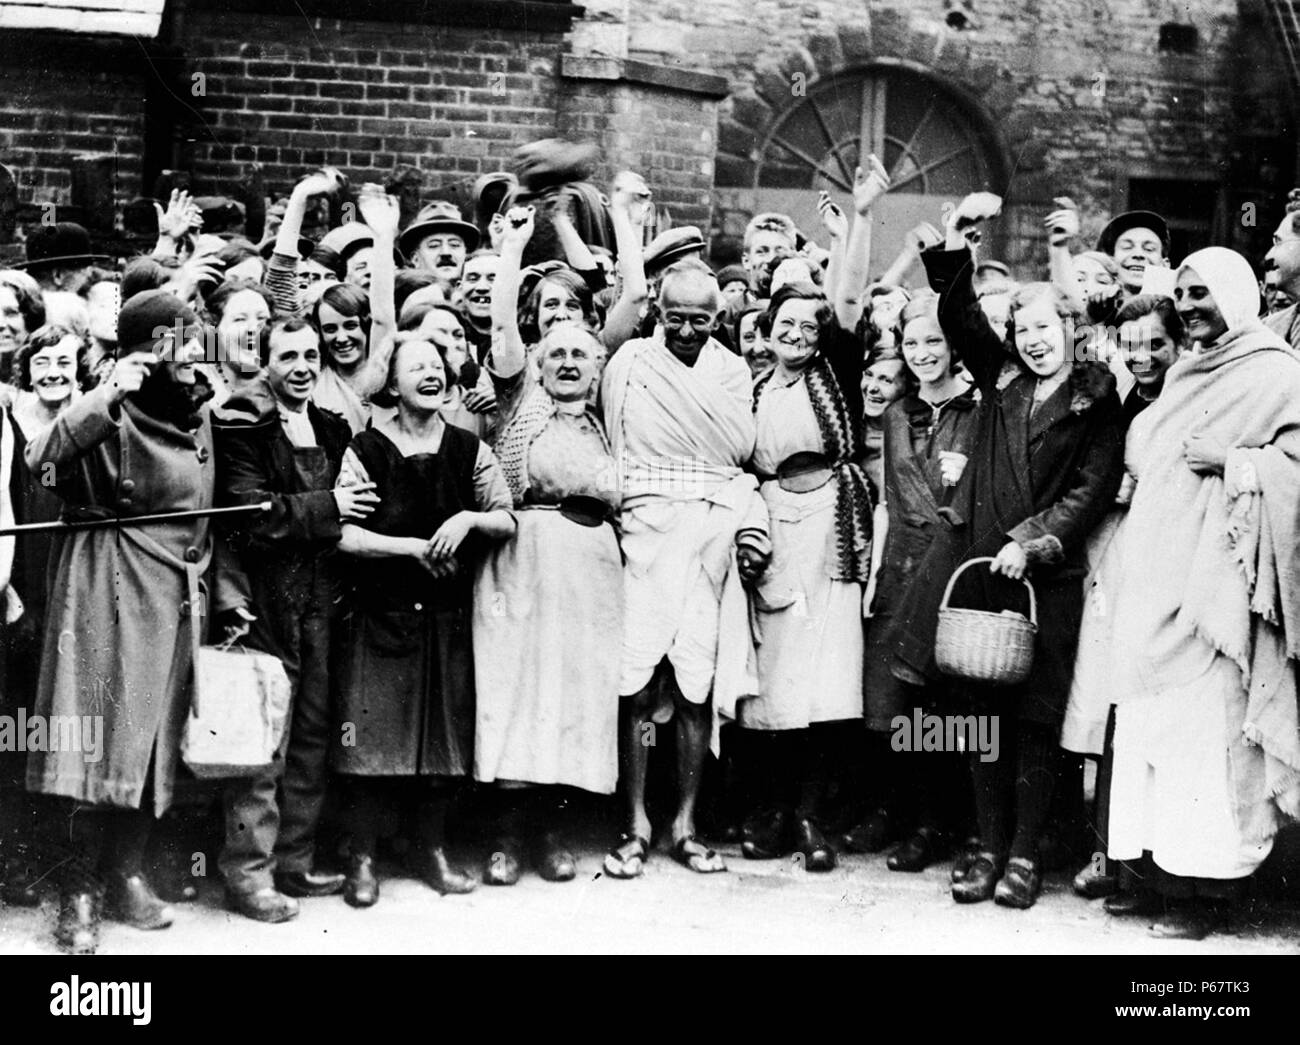 Photograph of Mahatma Gandhi being greeted by a group of female textile workers during a visit to Darwen Lancashire. Dated 1931 - Stock Image